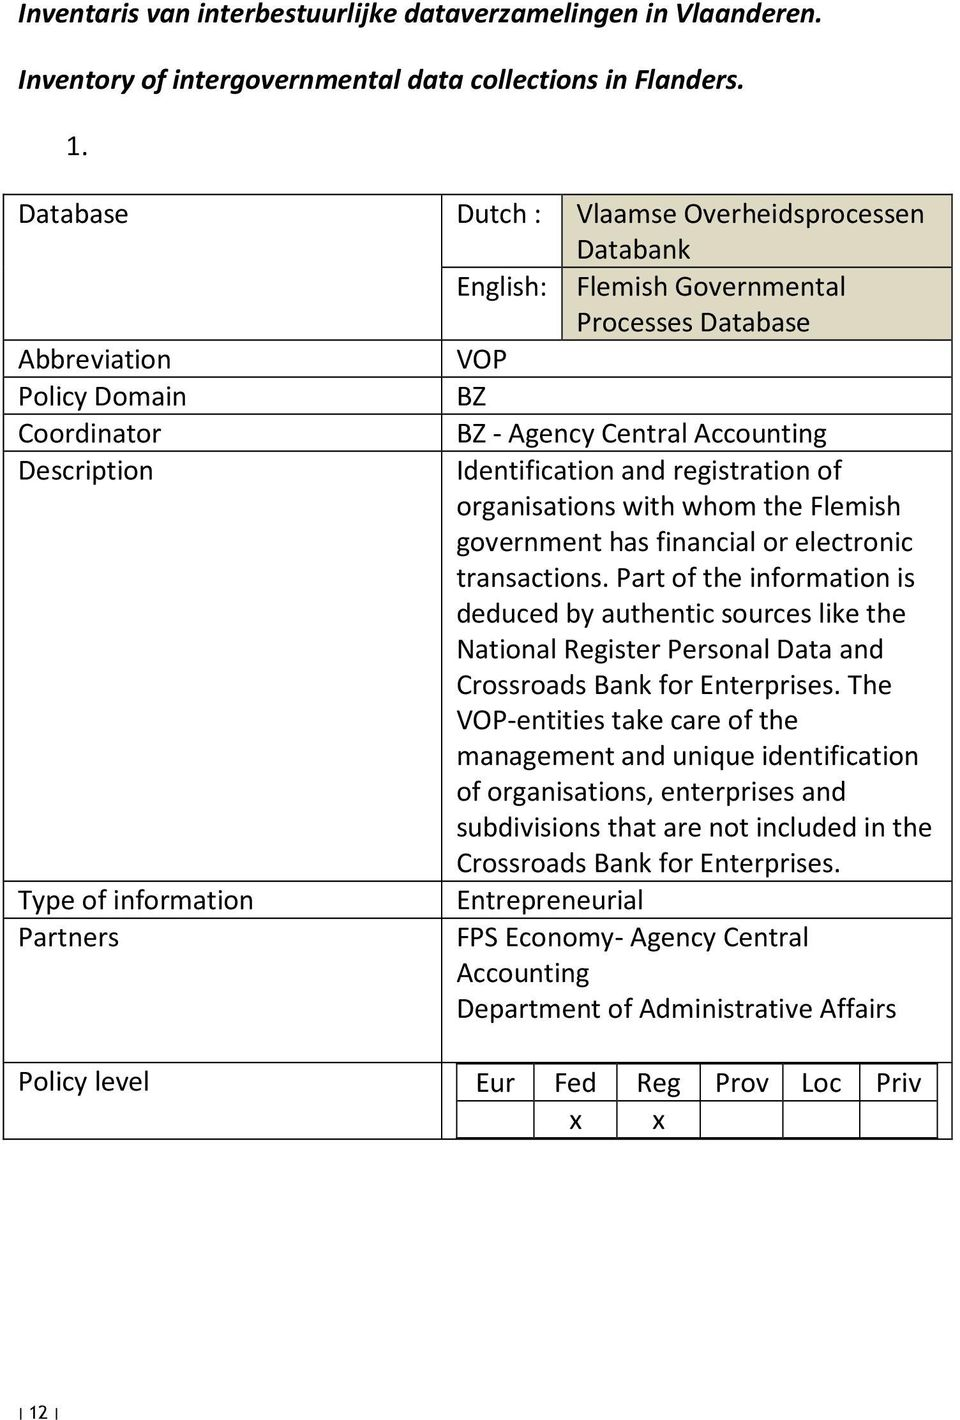 Flemish government has financial or electronic transactions. Part of the information is deduced by authentic sources like the National Register Personal Data and Crossroads Bank for Enterprises.